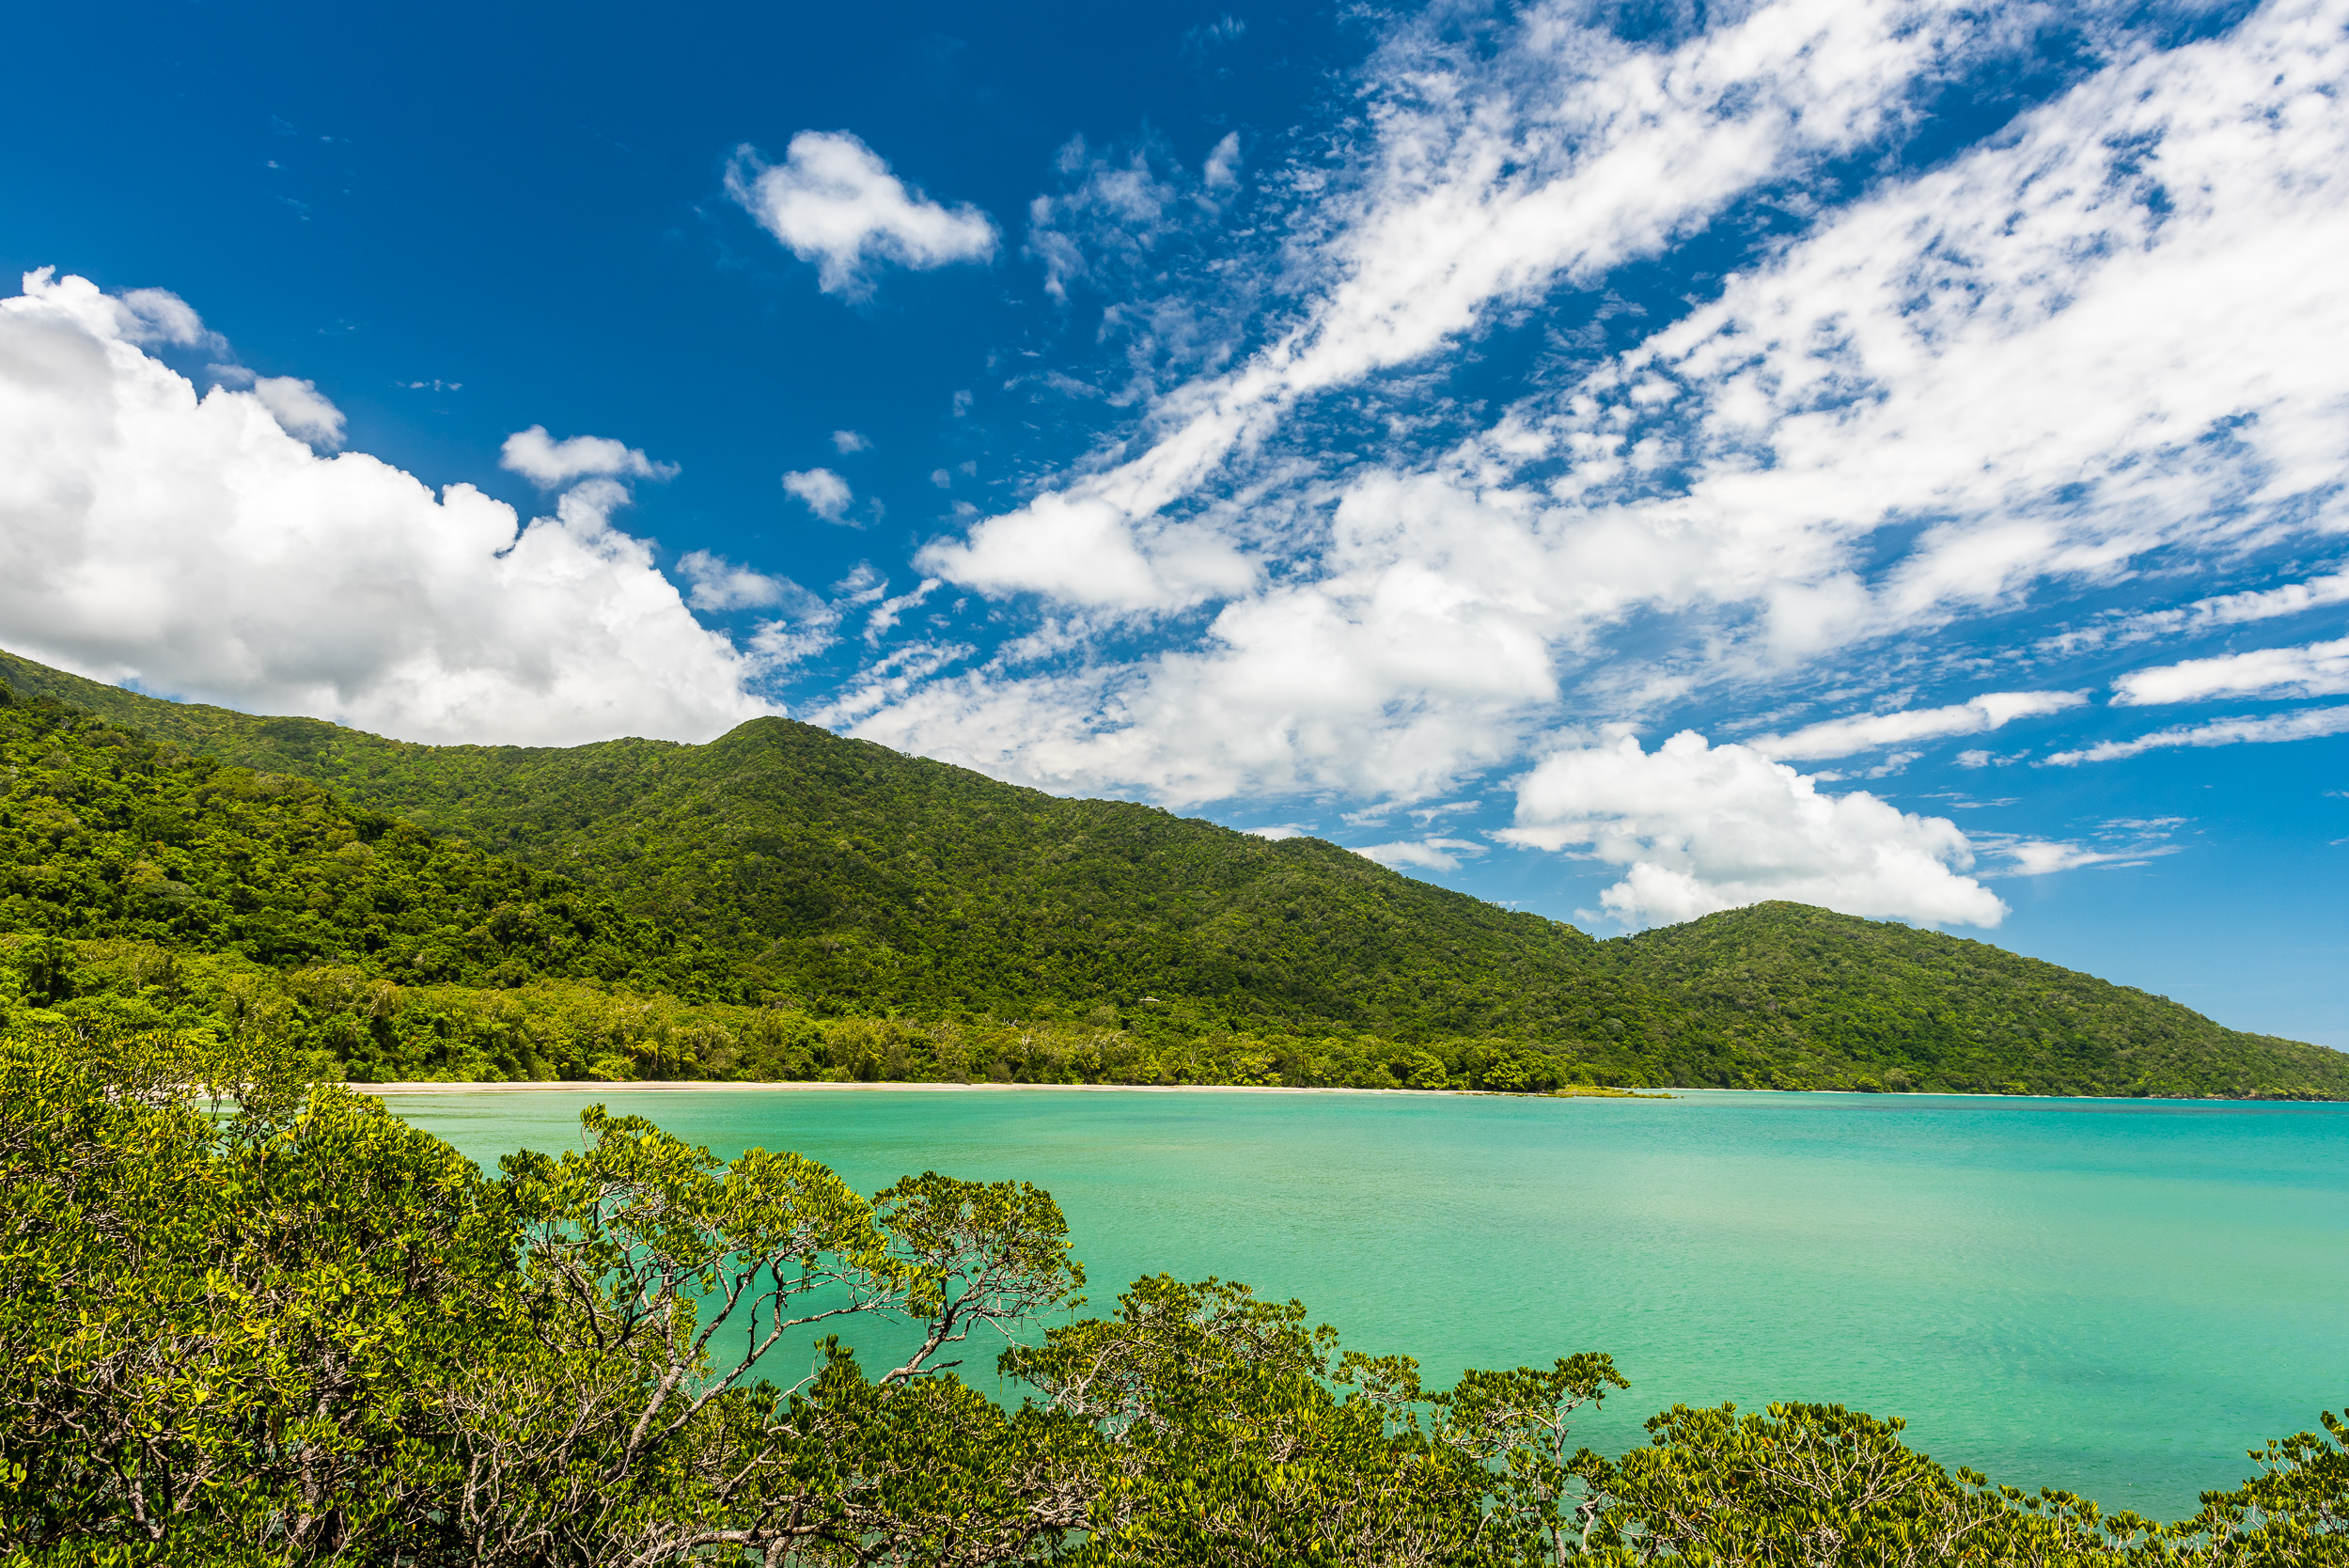 cape-tribulation-australia-3.jpg